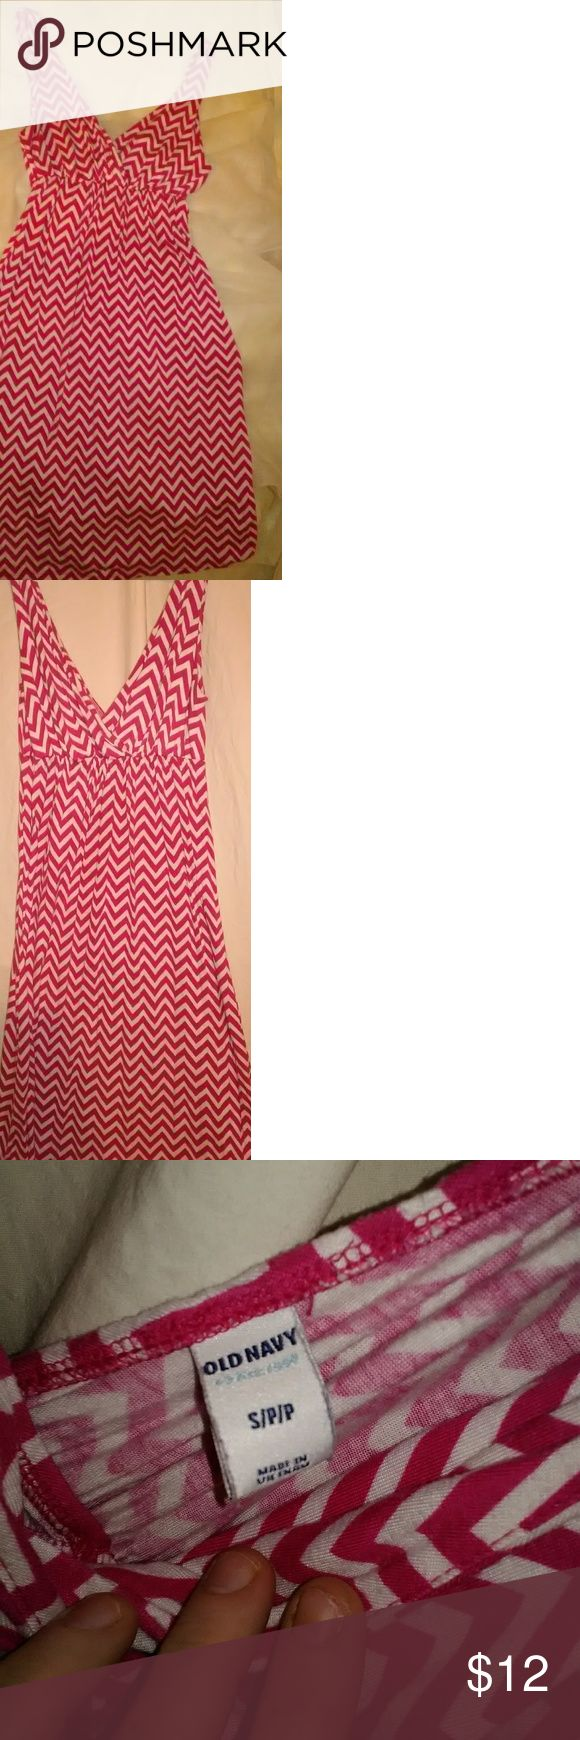 Old Navy Chevron Dress Pink Chevron print Old Navy dress. Size small petite. Breastfeeding friendly. I used this as a maternity dress before I got huge. Pre-owned ( may have signs of wear and piling). No stains or tears. Old Navy Dresses